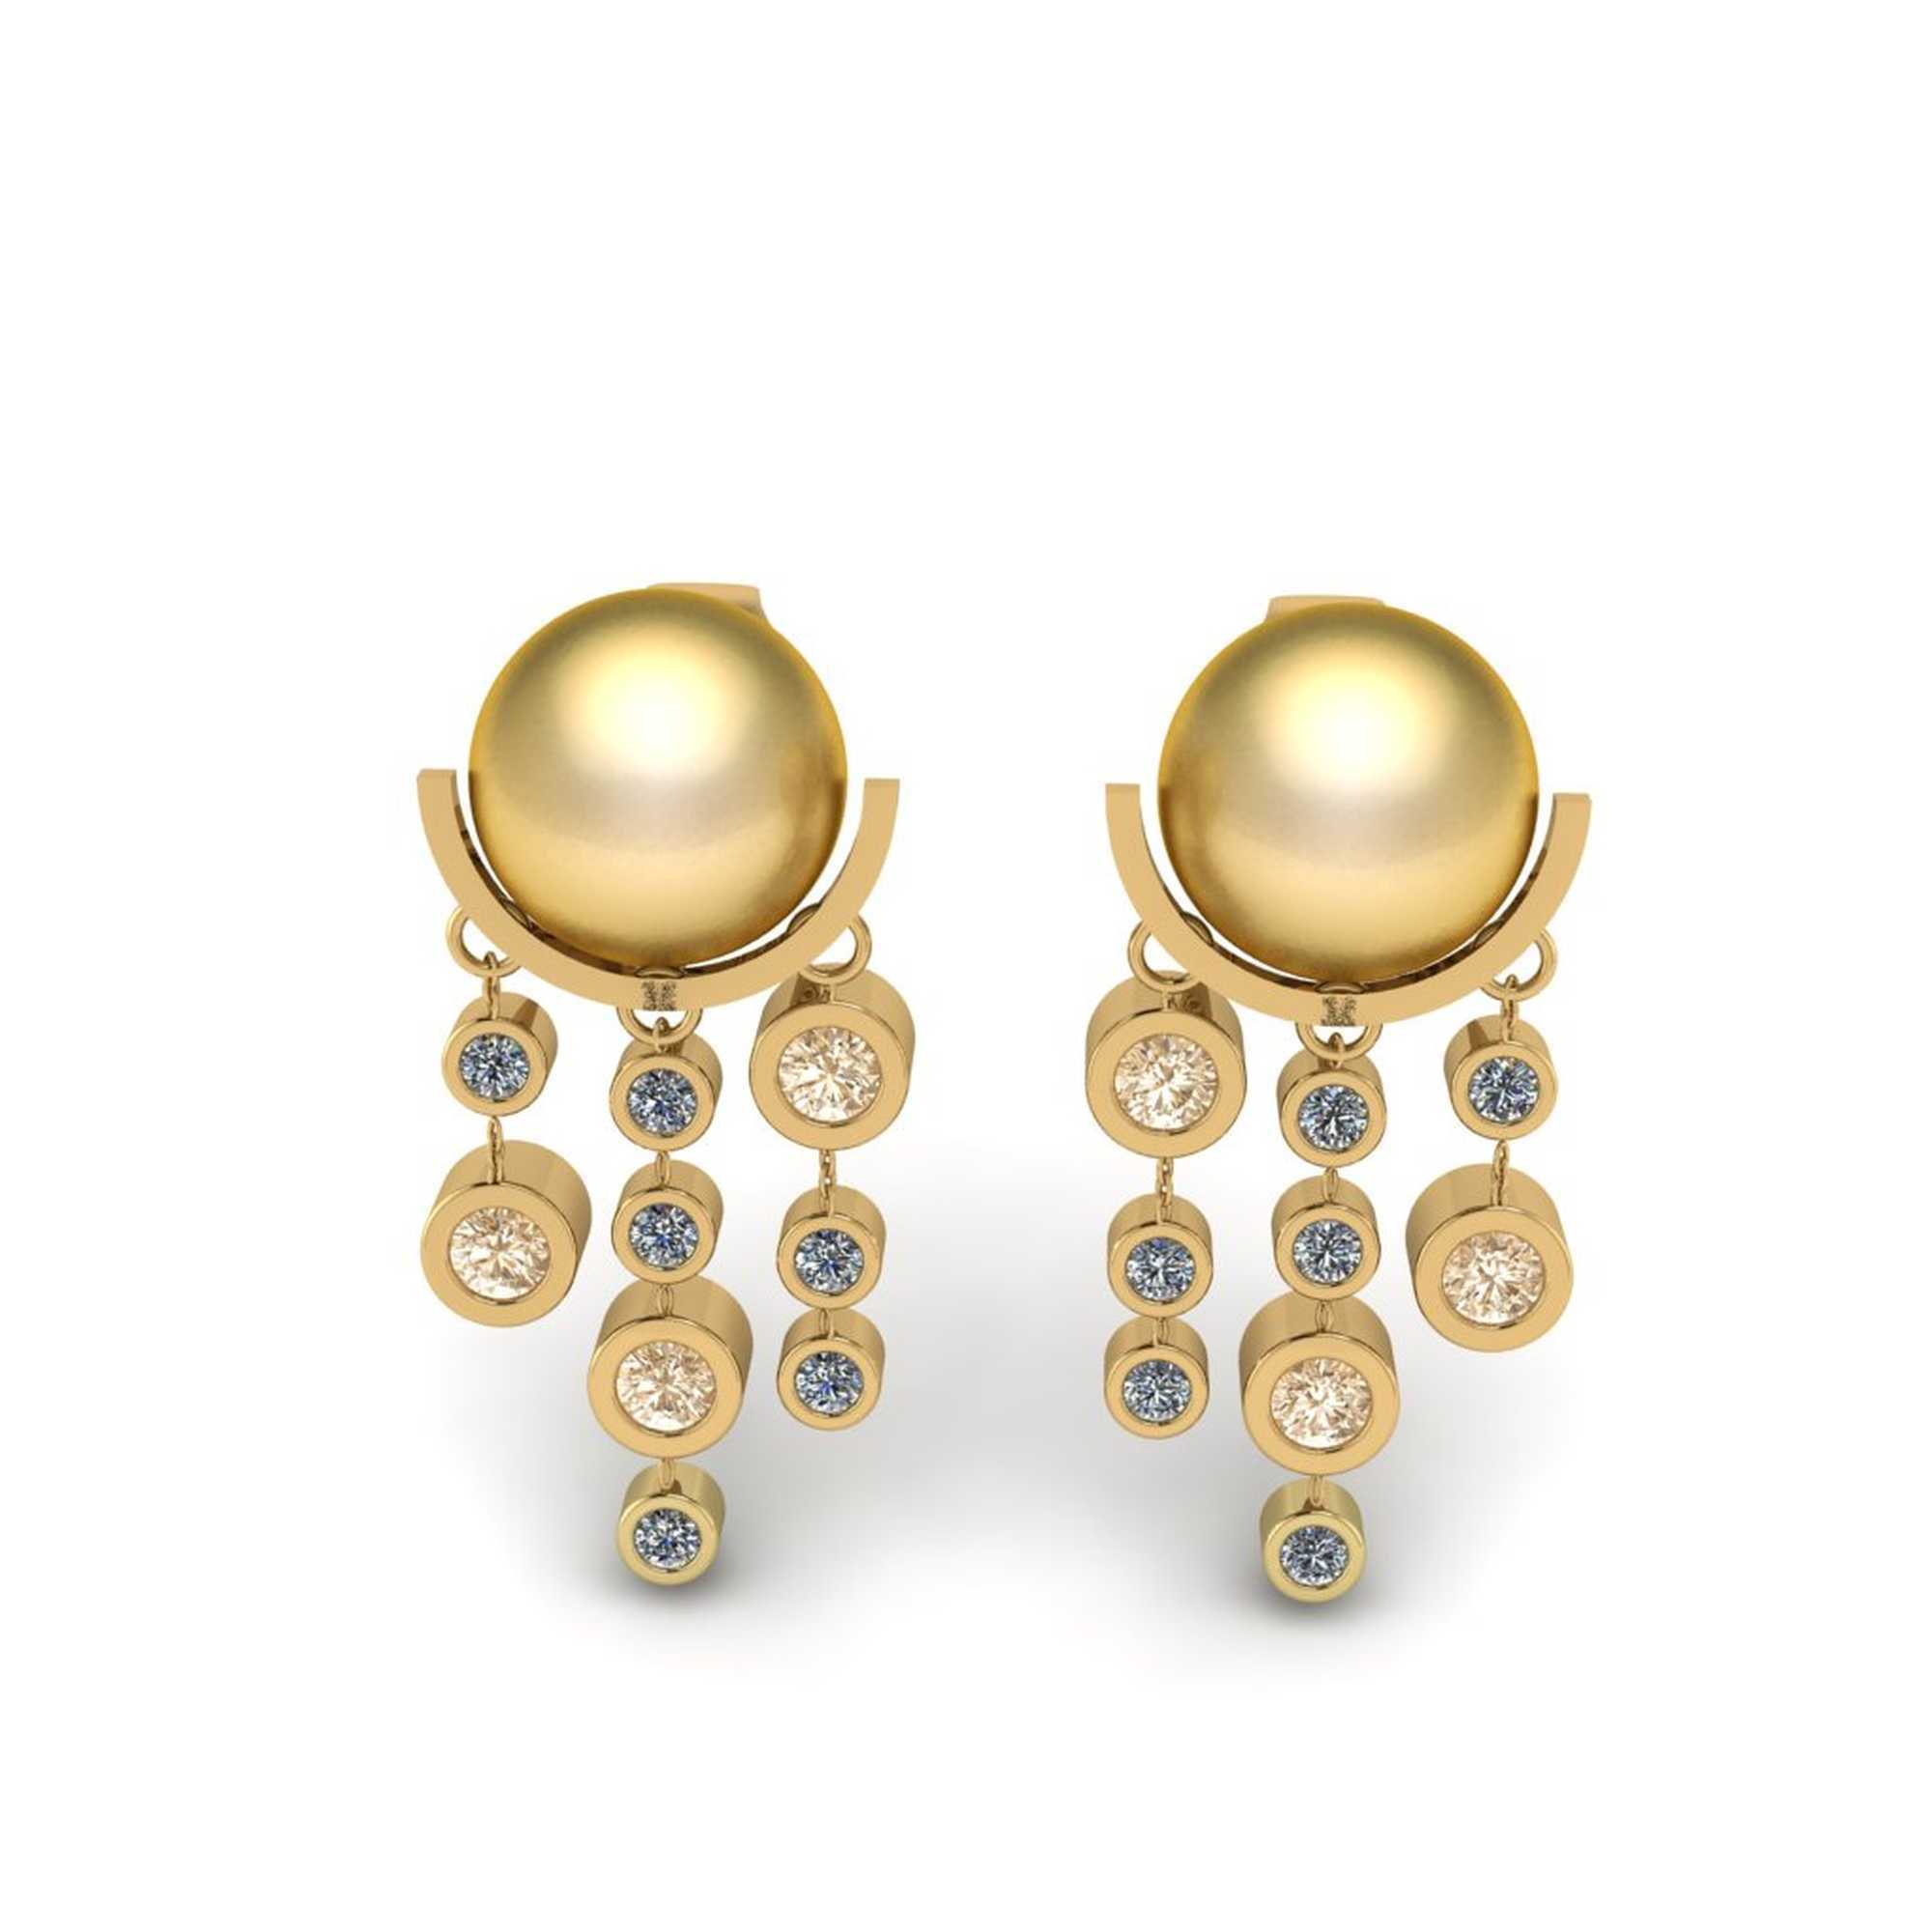 Nevisca Earrings